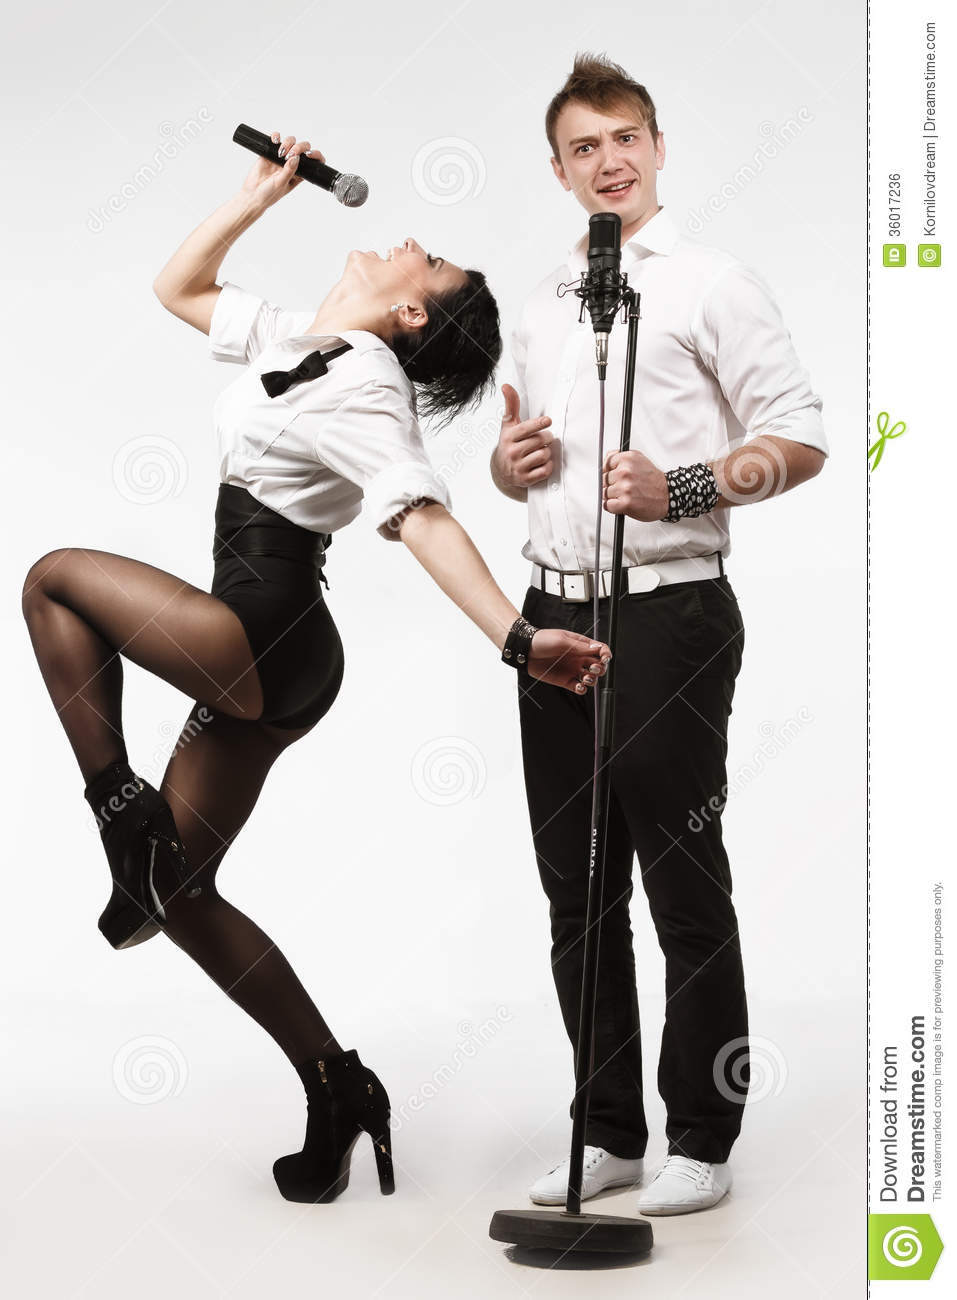 Performs Duet Singing Microphone Royalty Free Stock Image